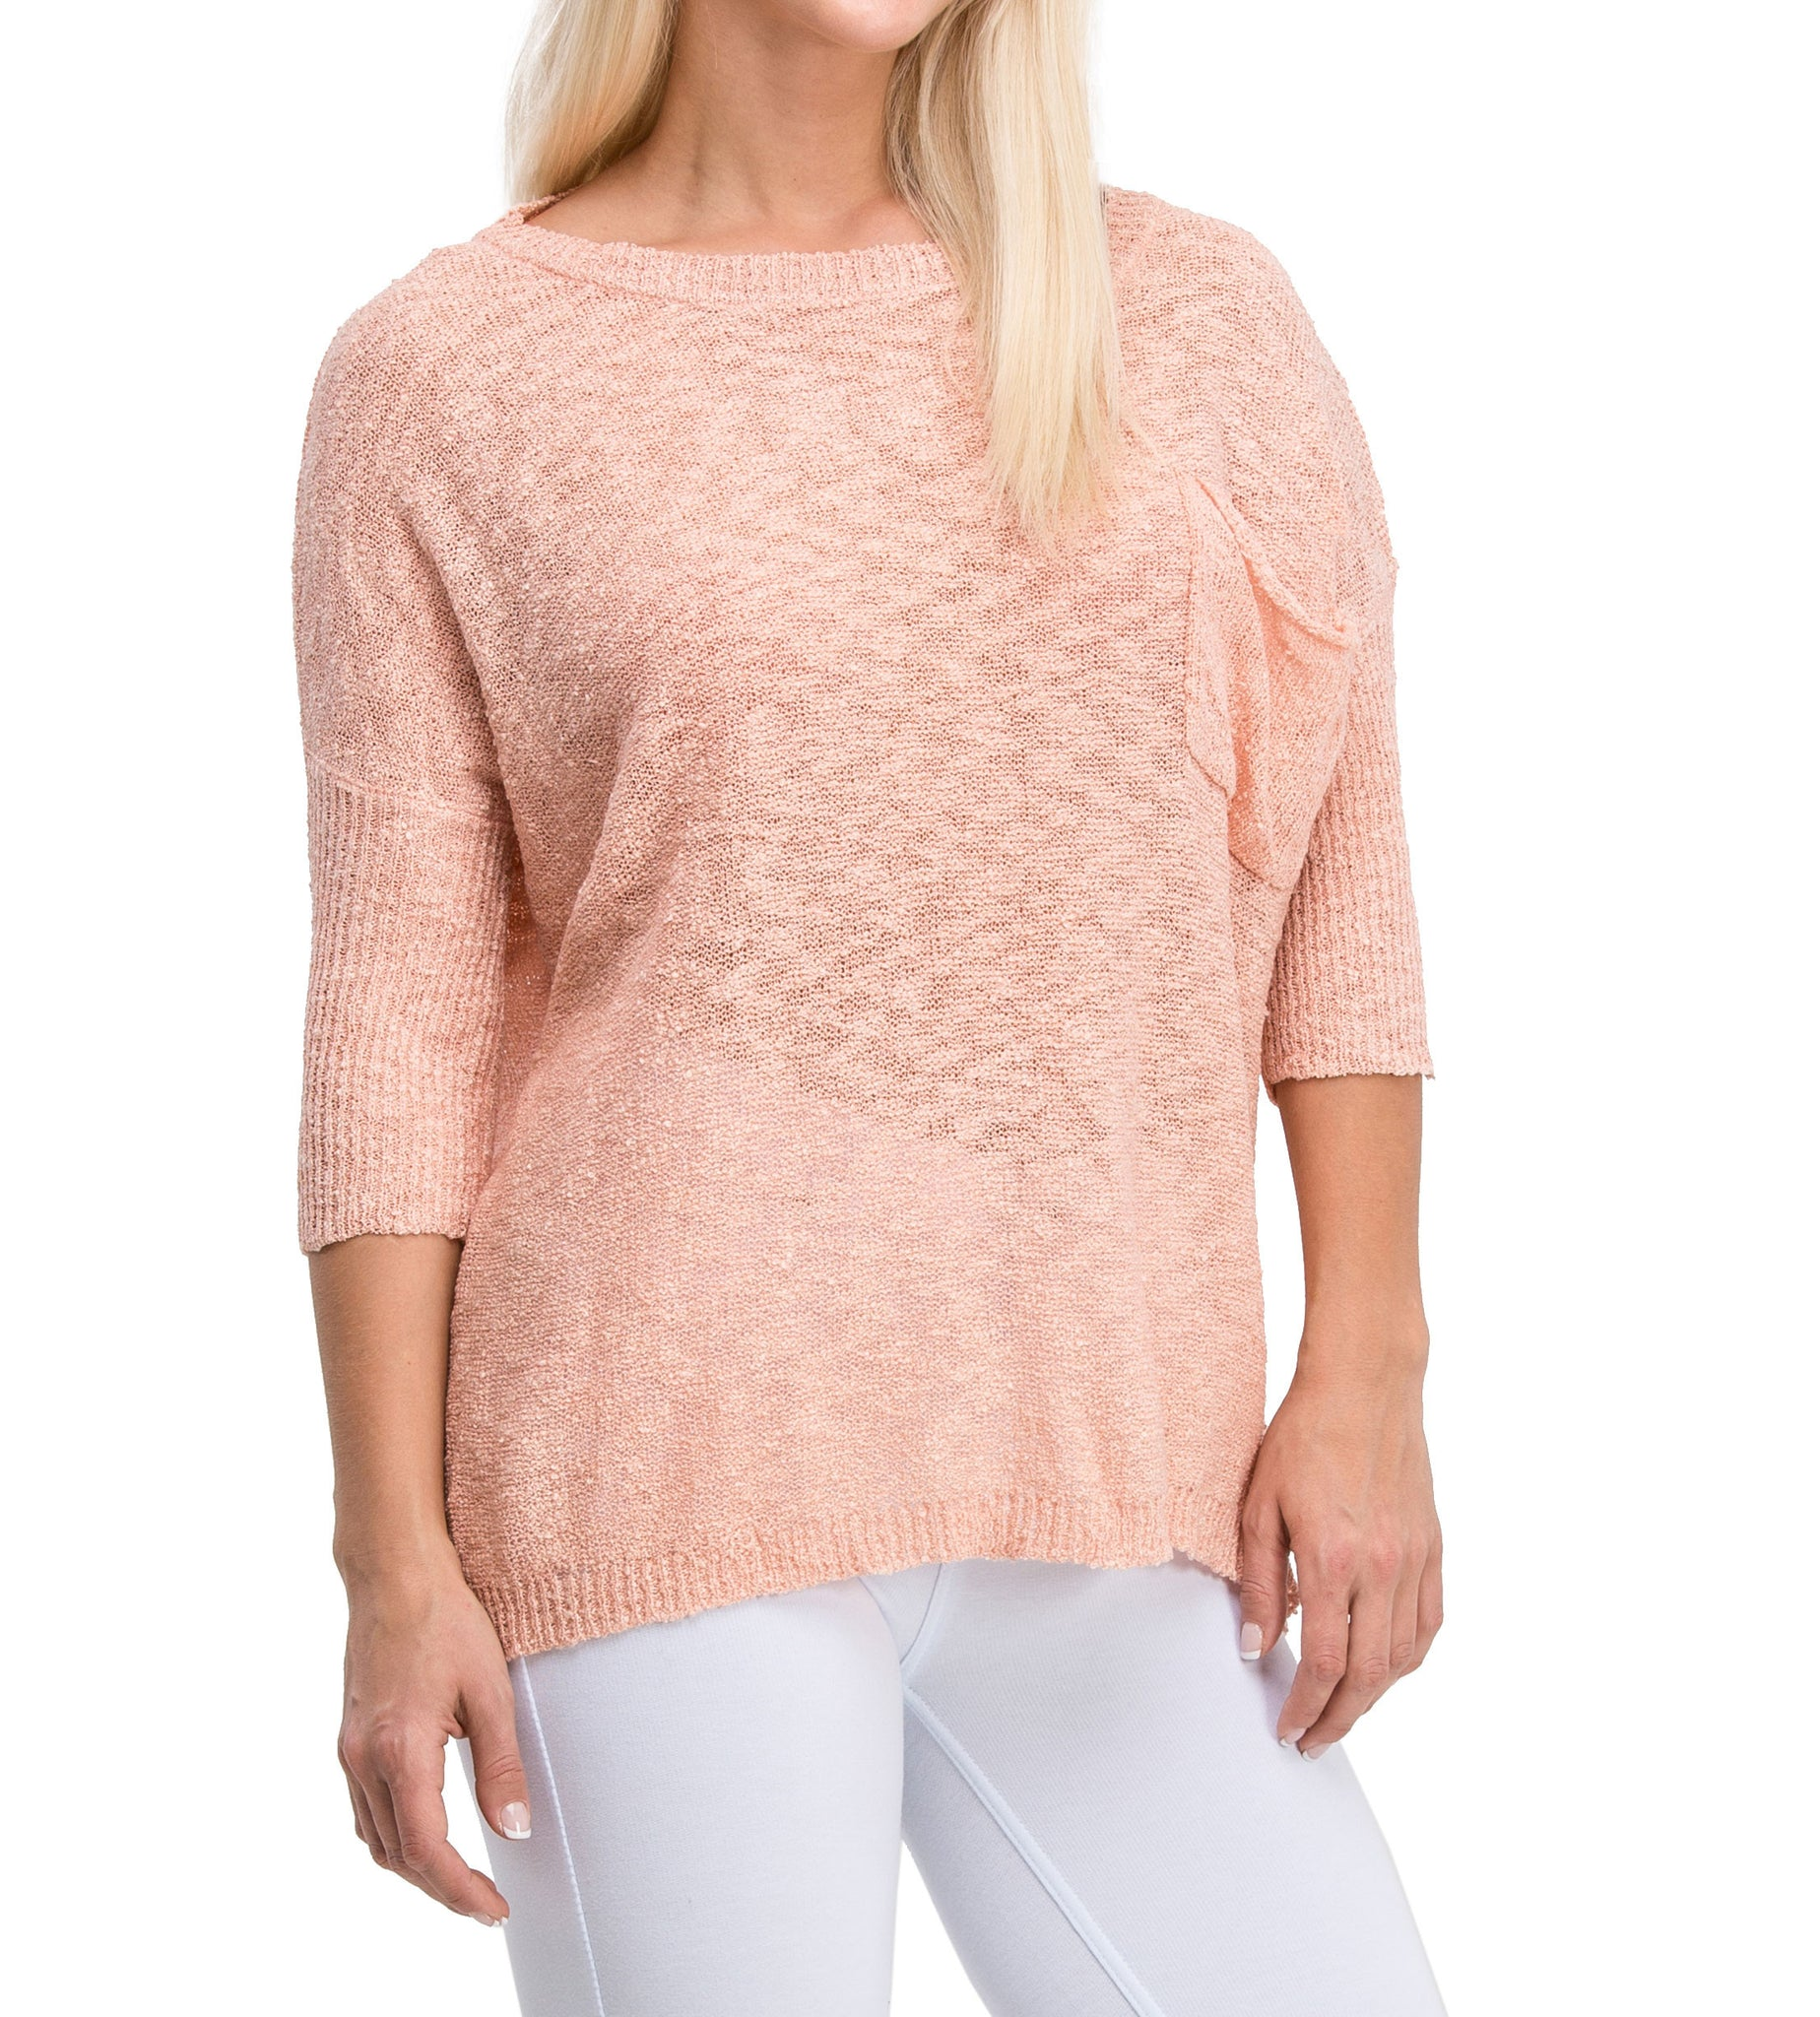 Comfy Casual Elegant Lightweight Sweater Dress (Pink)